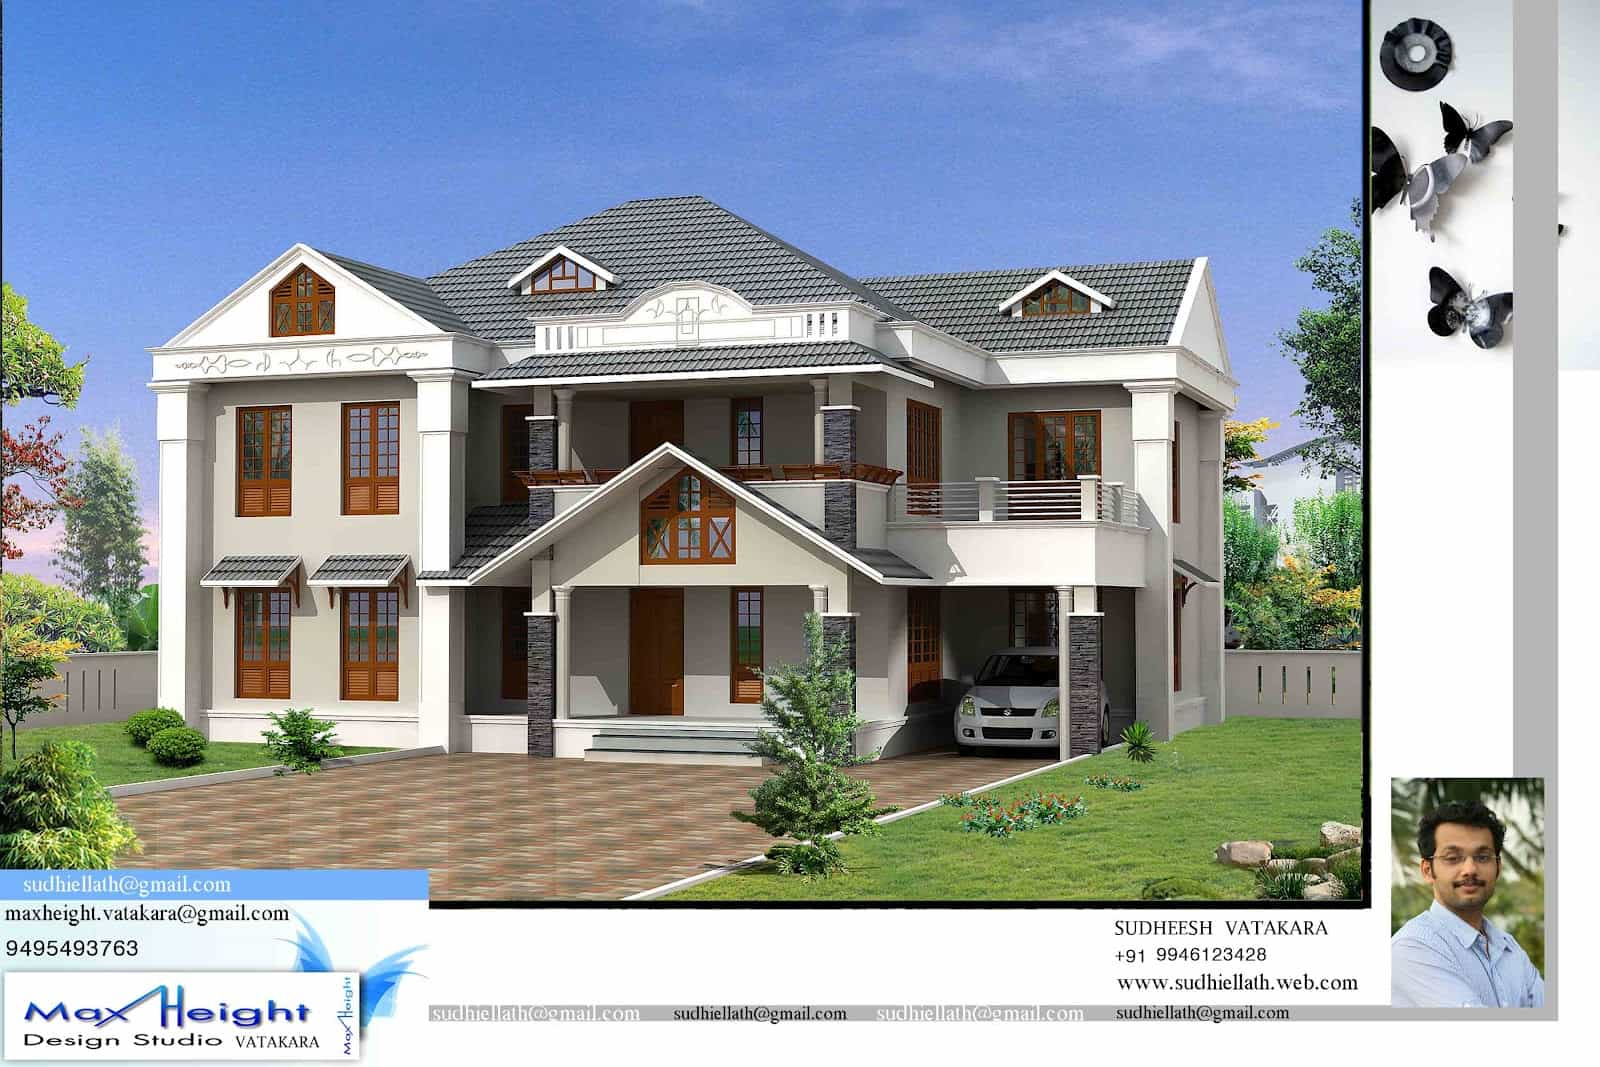 New model houses in kerala photos images for Latest house designs 2015